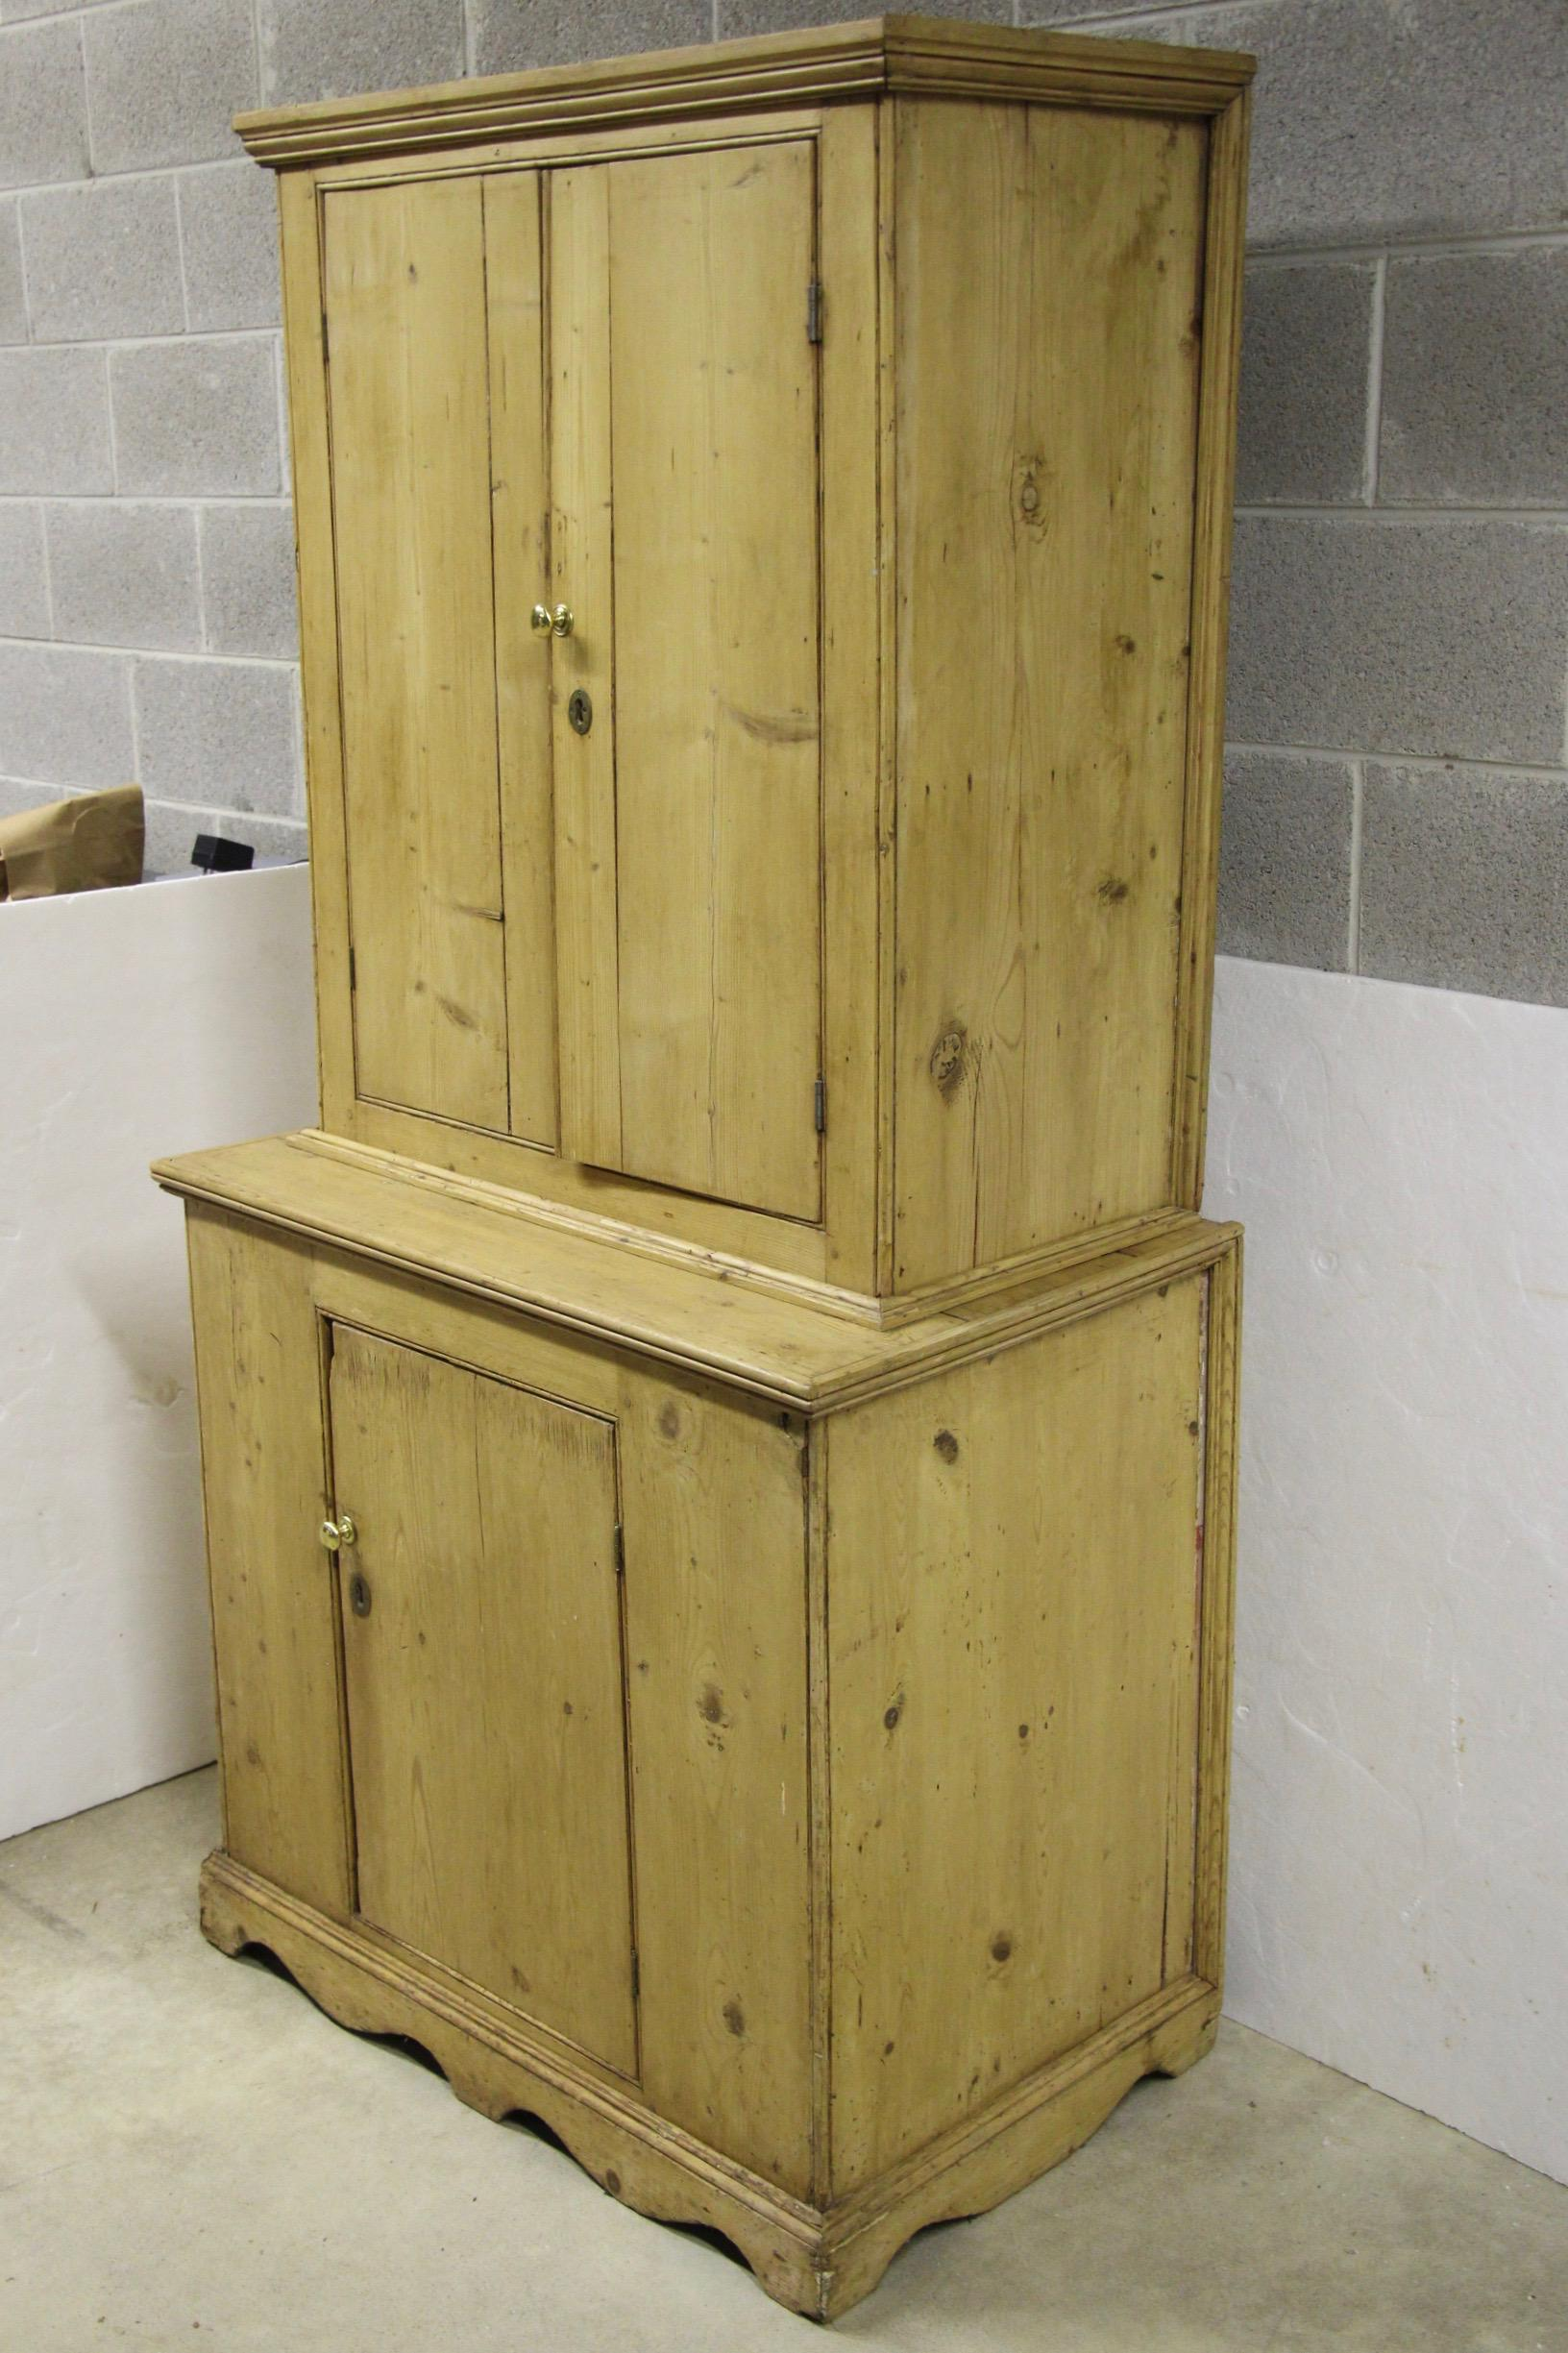 Lots Of Rustic Appeal To This Knotty Pine Hutch. Believed To Be Early 1900s,